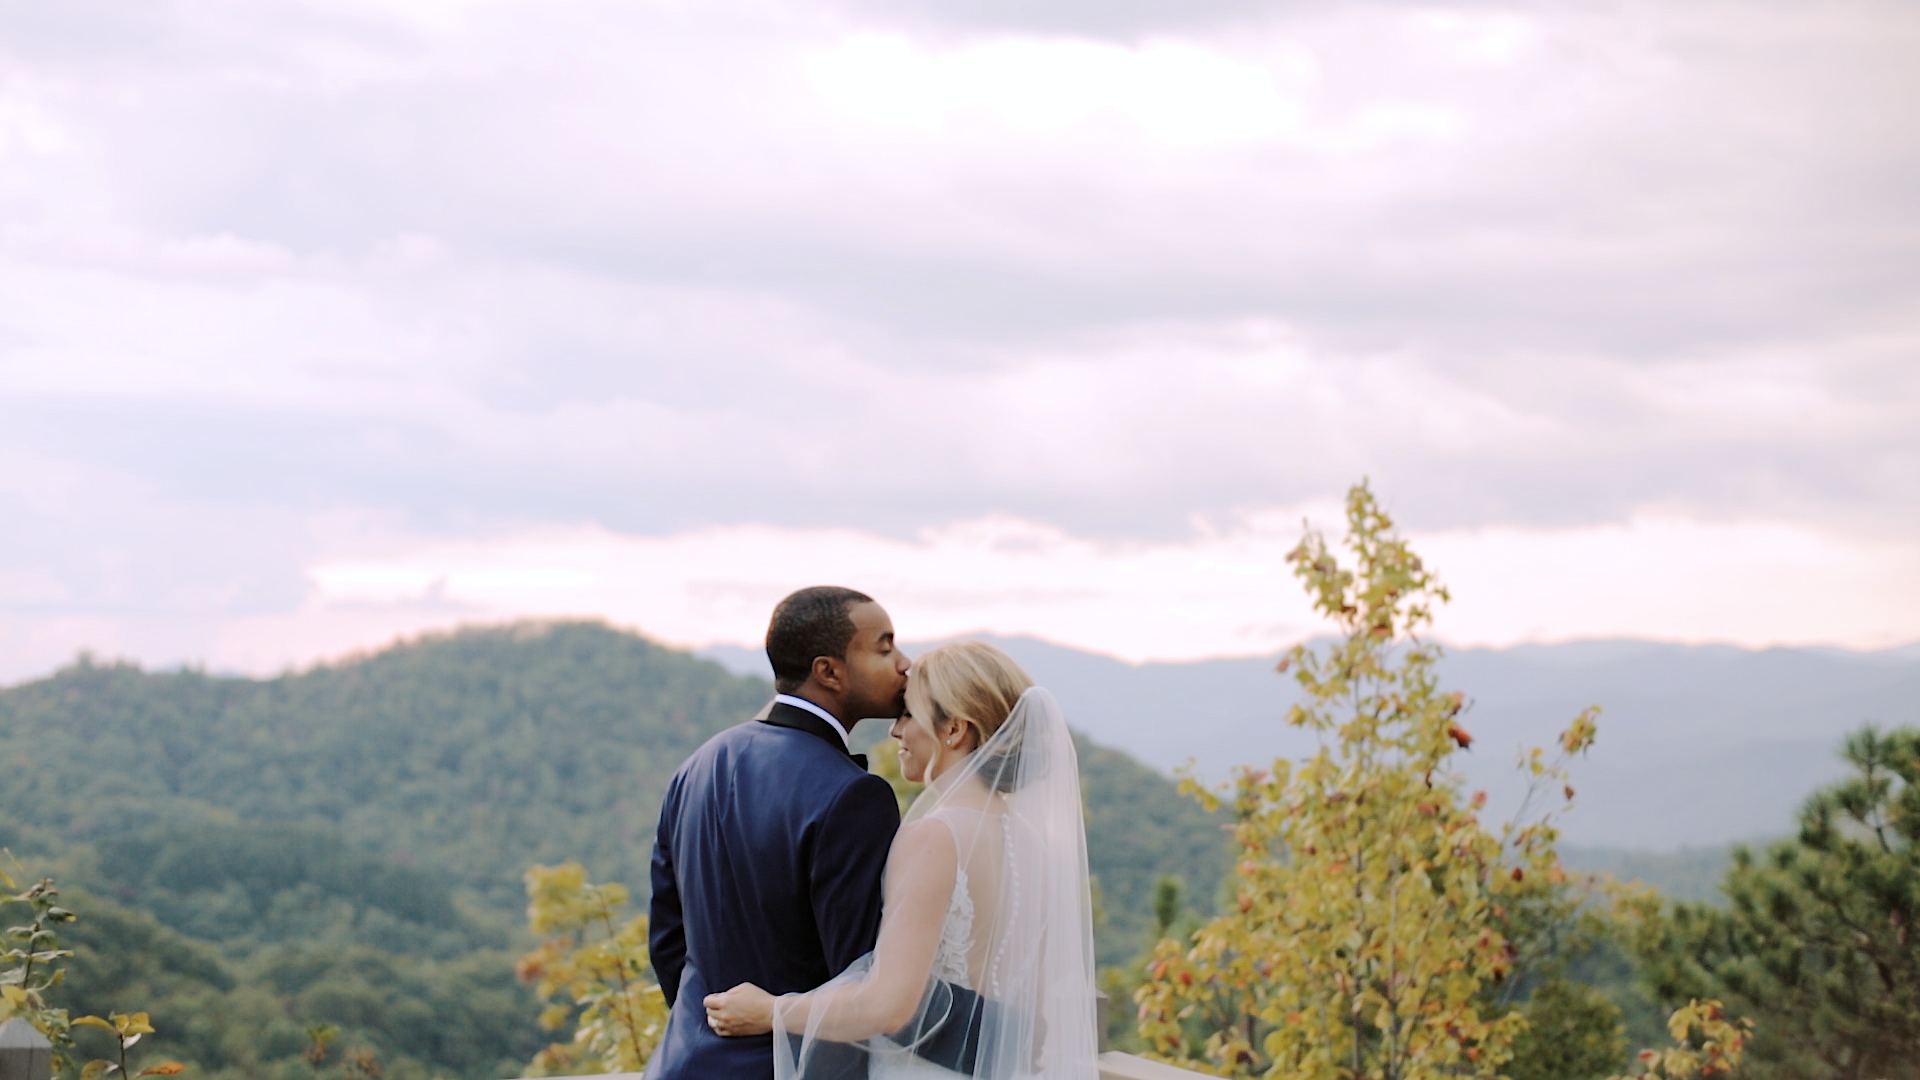 Kate + Chad | Andrews, North Carolina | Hawkesdene House